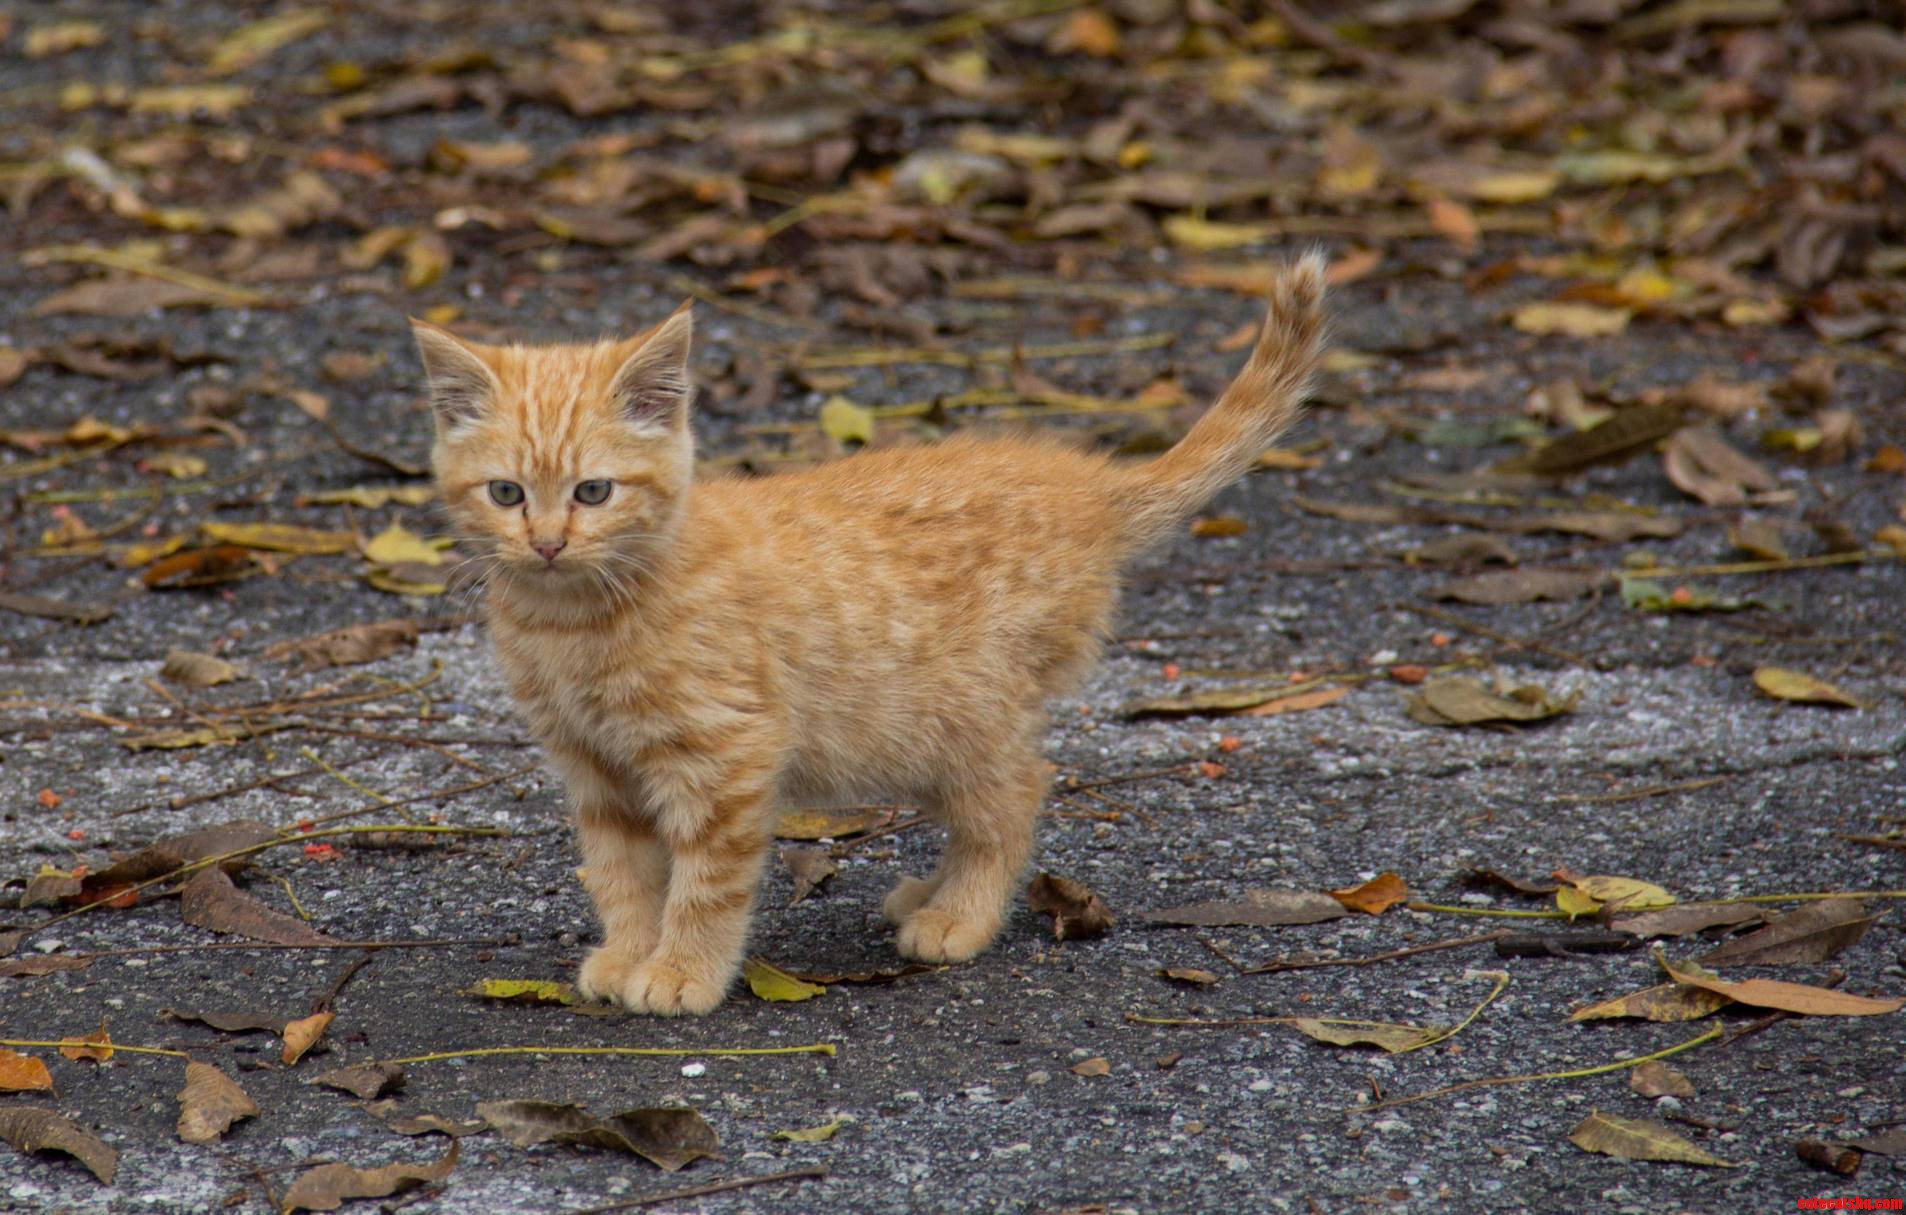 Found This Scrappy Little Guy Playing With Leaves In A Parking Lot